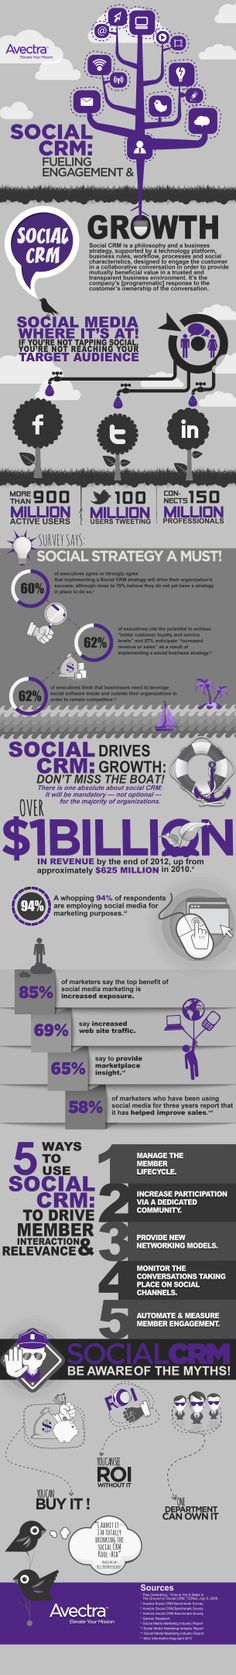 Social CRM: Fueling Engagement And Growth [INFOGRAPHIC] #CRM #social